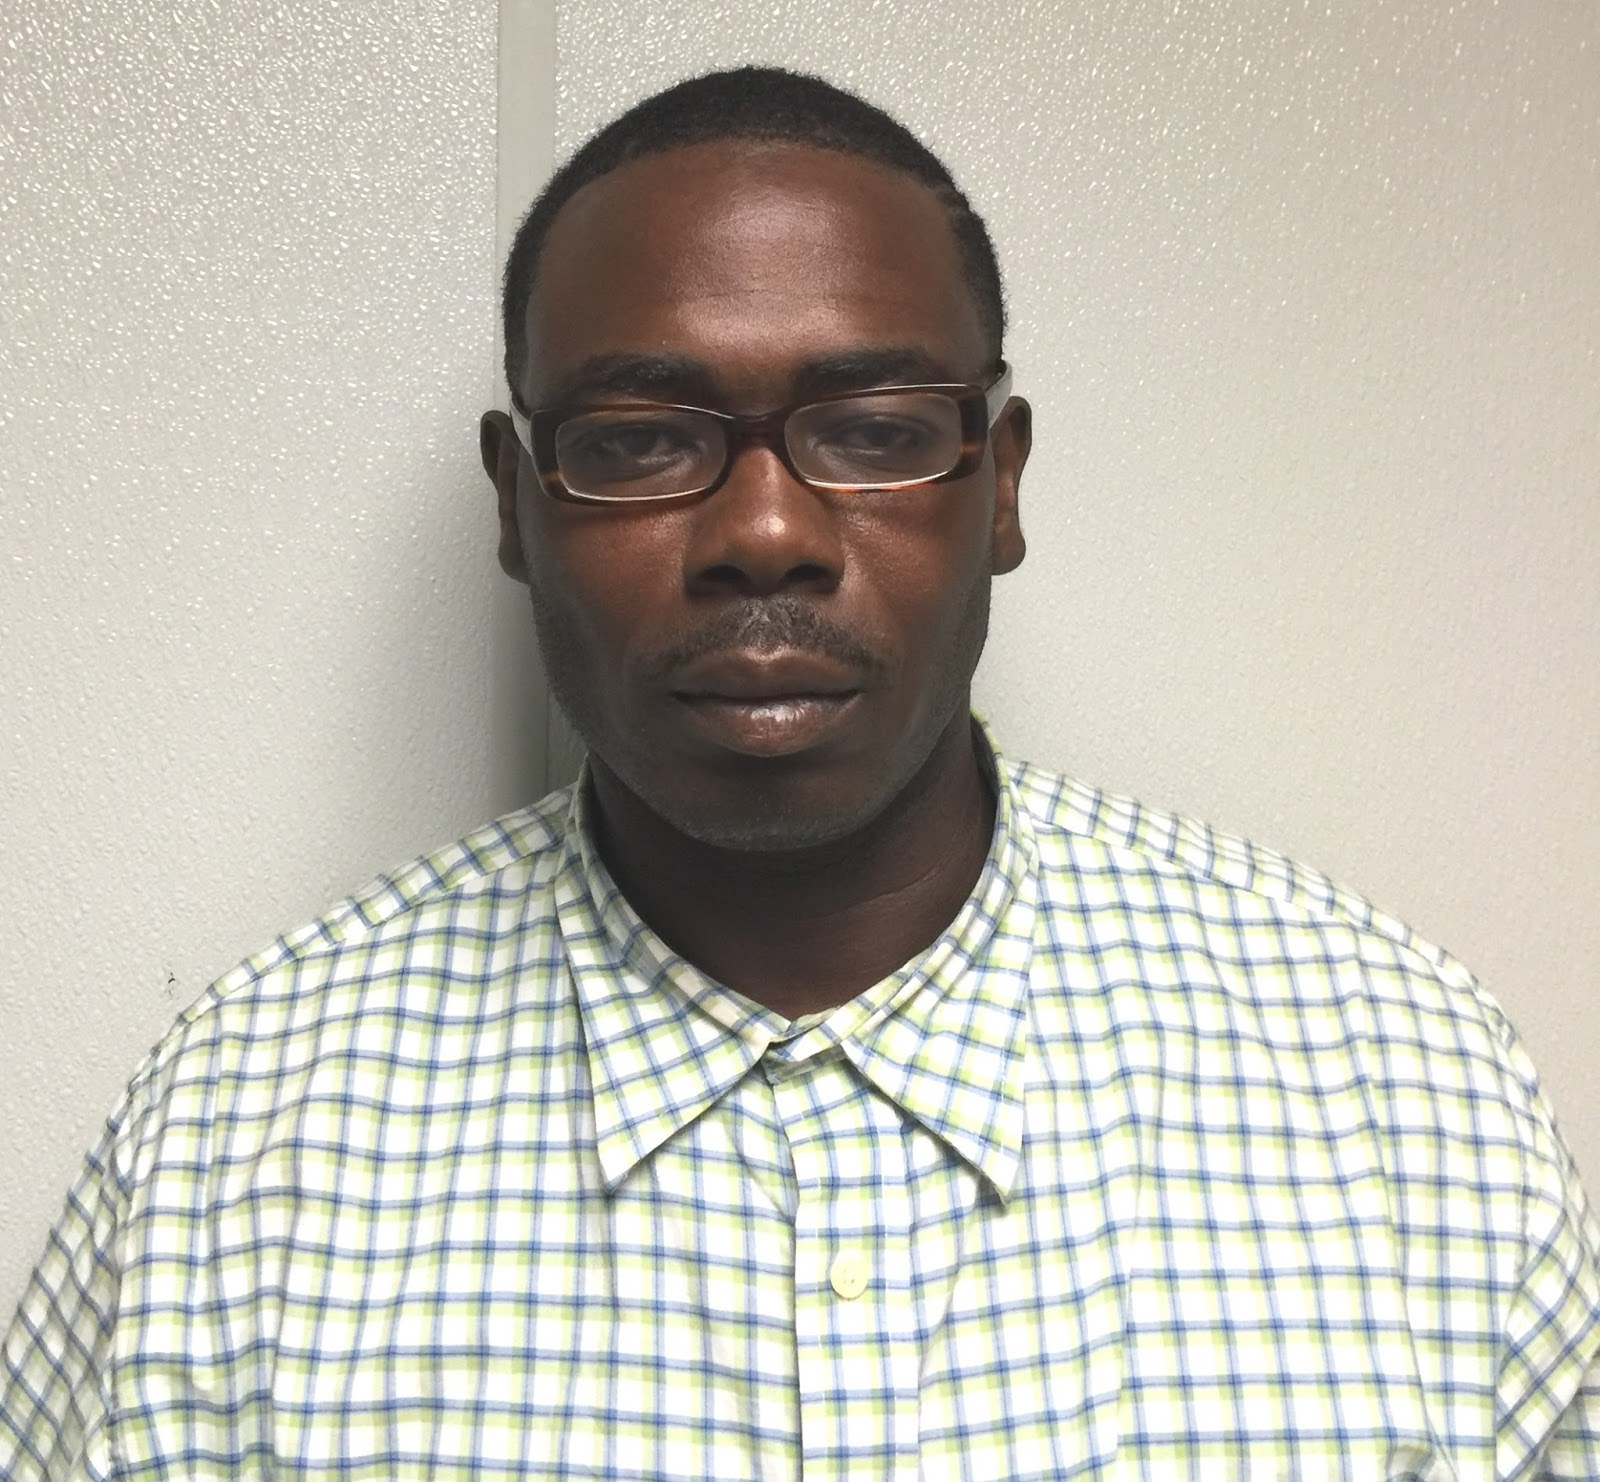 PGPD News: Detectives Arrest Suspect For Domestic-Related